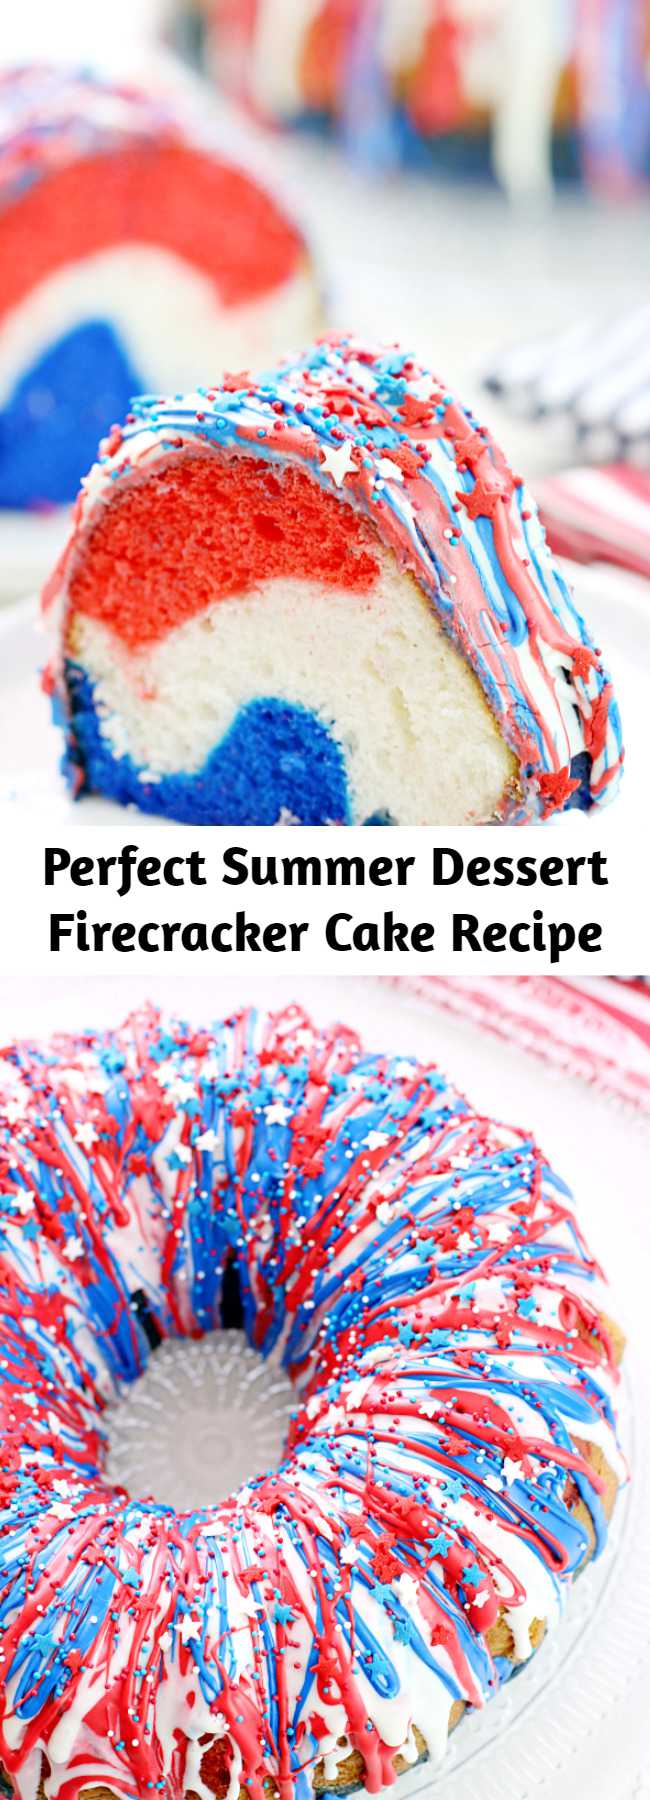 Perfect Summer Dessert Firecracker Cake Recipe - Show your patriotism with this Firecracker Cake! The red, white, and blue runs inside and out!! Great for Memorial Day, the 4th of July or any occasion you want to share a little American pride!